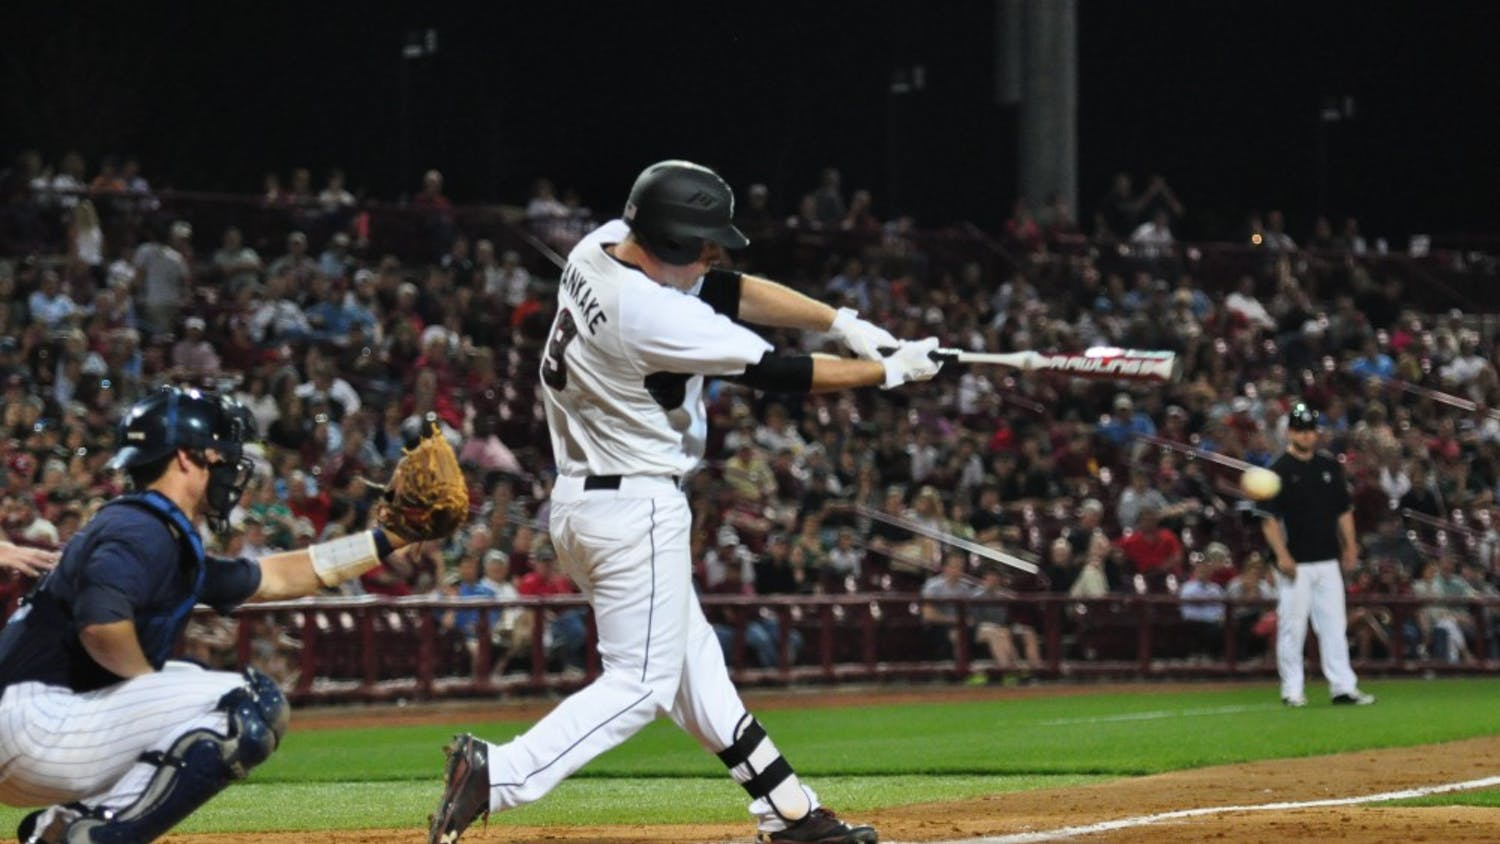 Sophomore shortstop Joey Pankake hit a home run in the bottom of the ninth inning to give the Gamecocks a 6-5 win over The Citadel at Carolina Stadium Tuesday night.